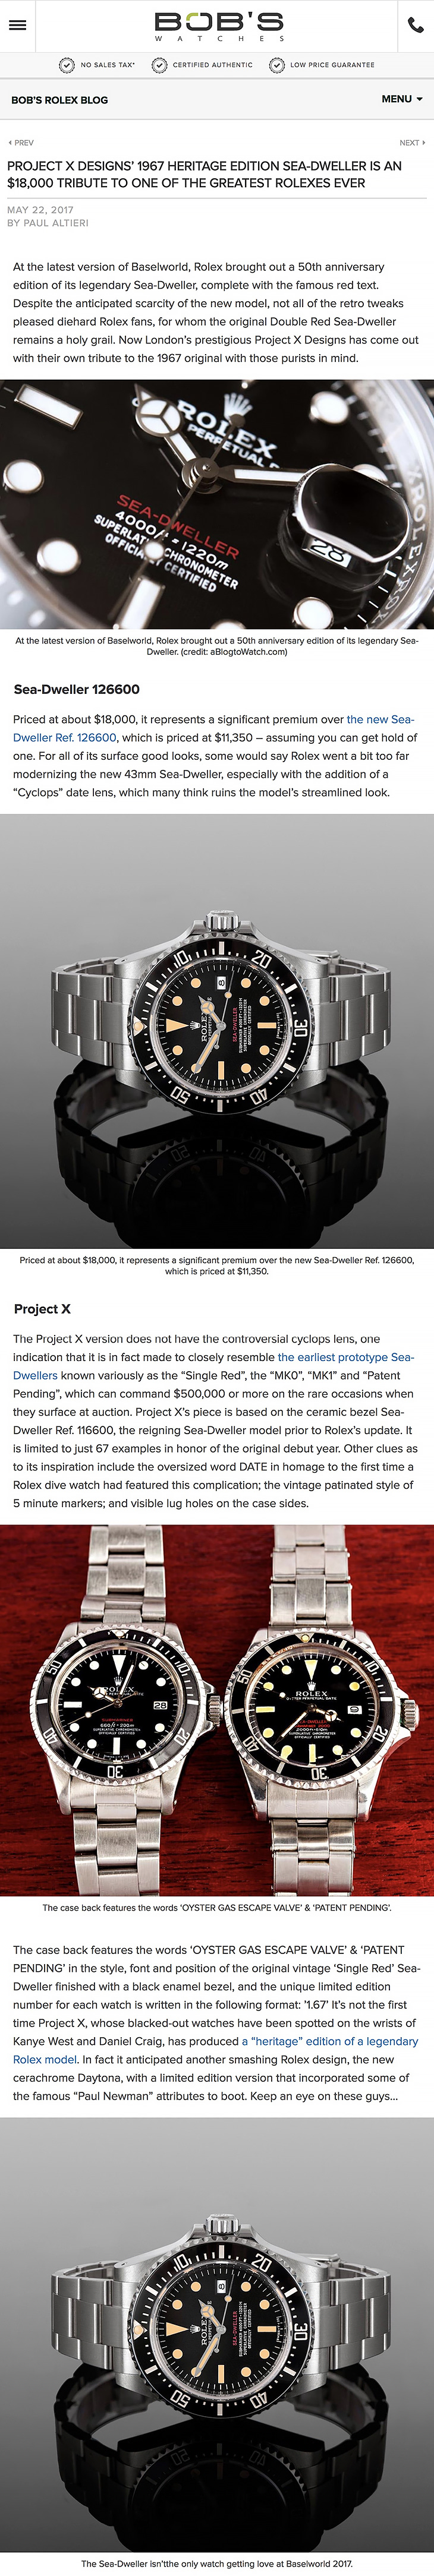 Bobs Watches 1967 Heritage Edition Project X Designs